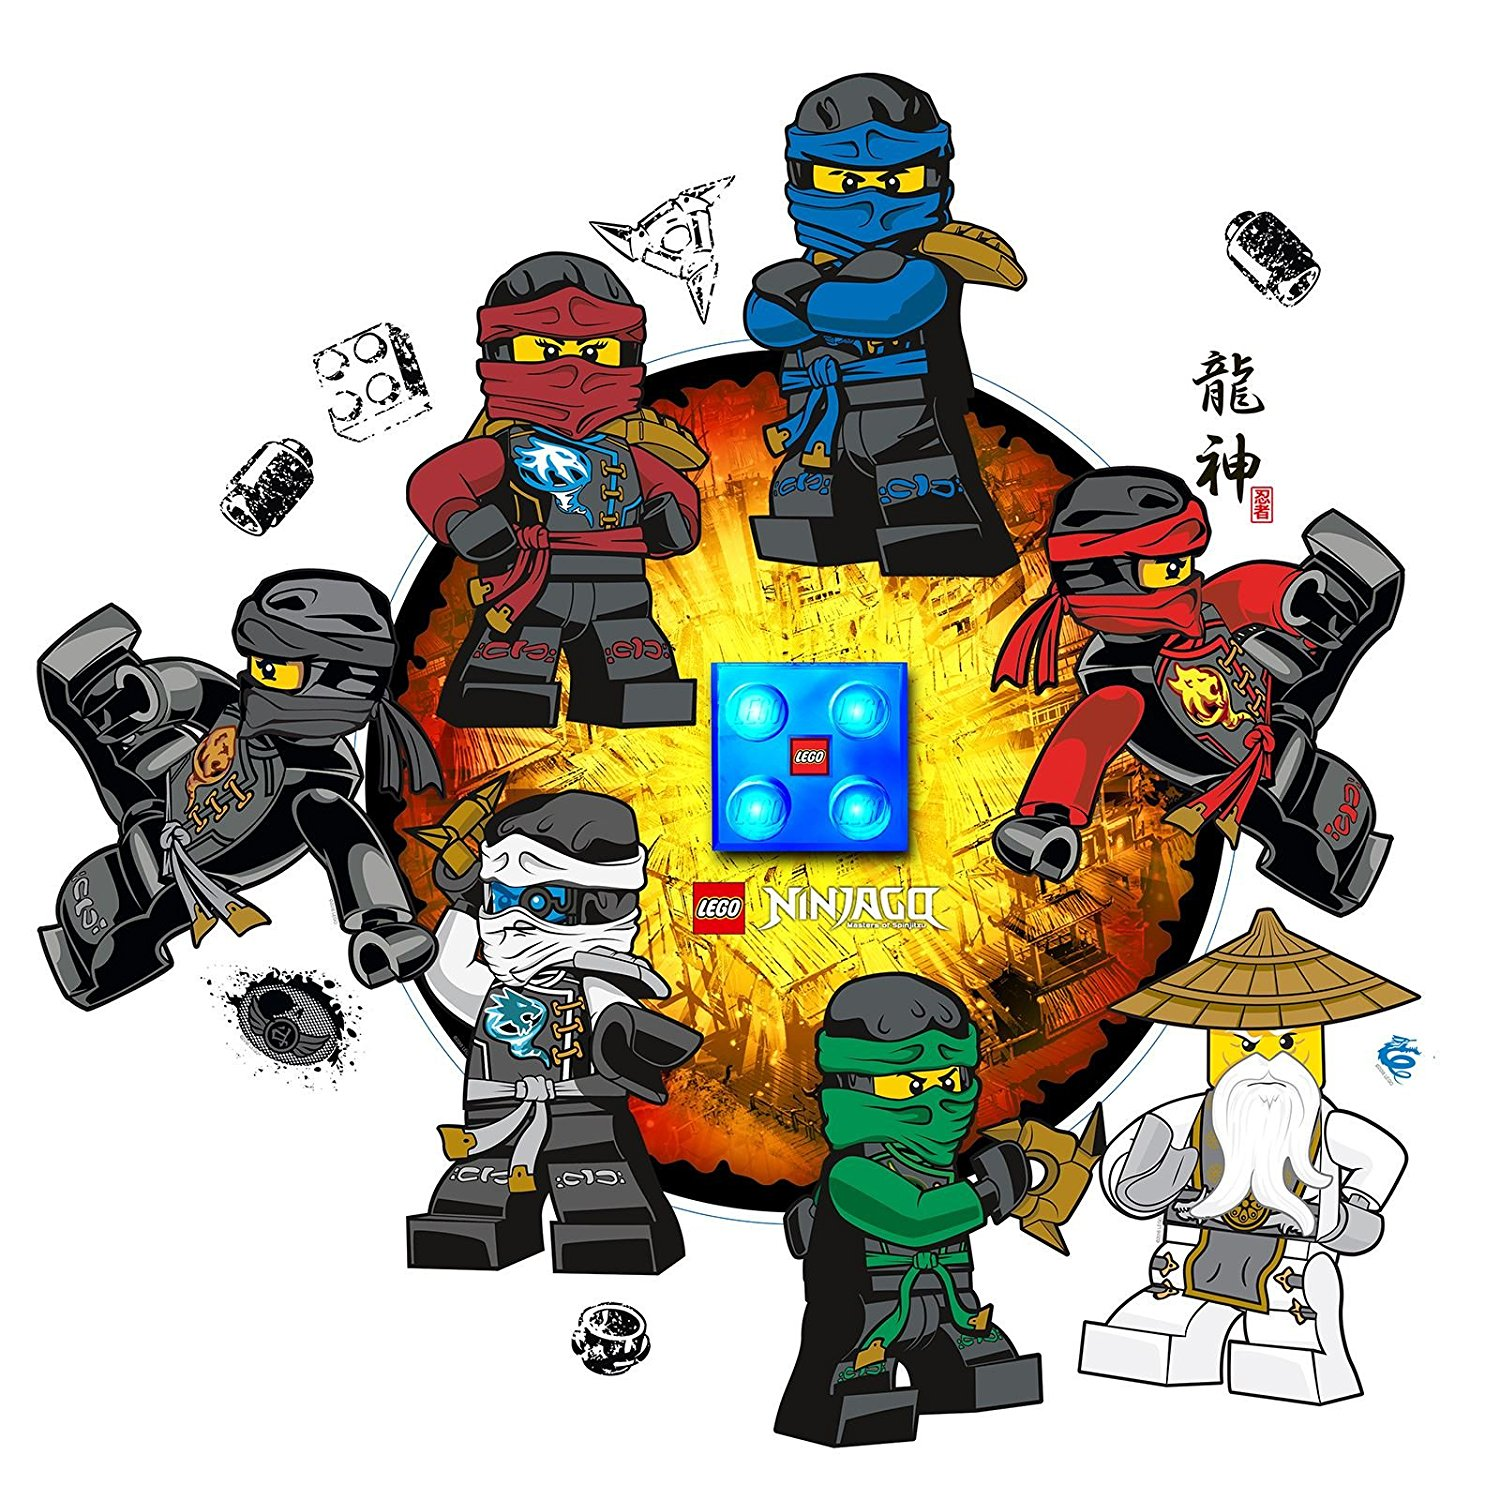 Remarkable Cheap Ninjago Wall Decals Find Ninjago Wall Decals Deals On Download Free Architecture Designs Scobabritishbridgeorg